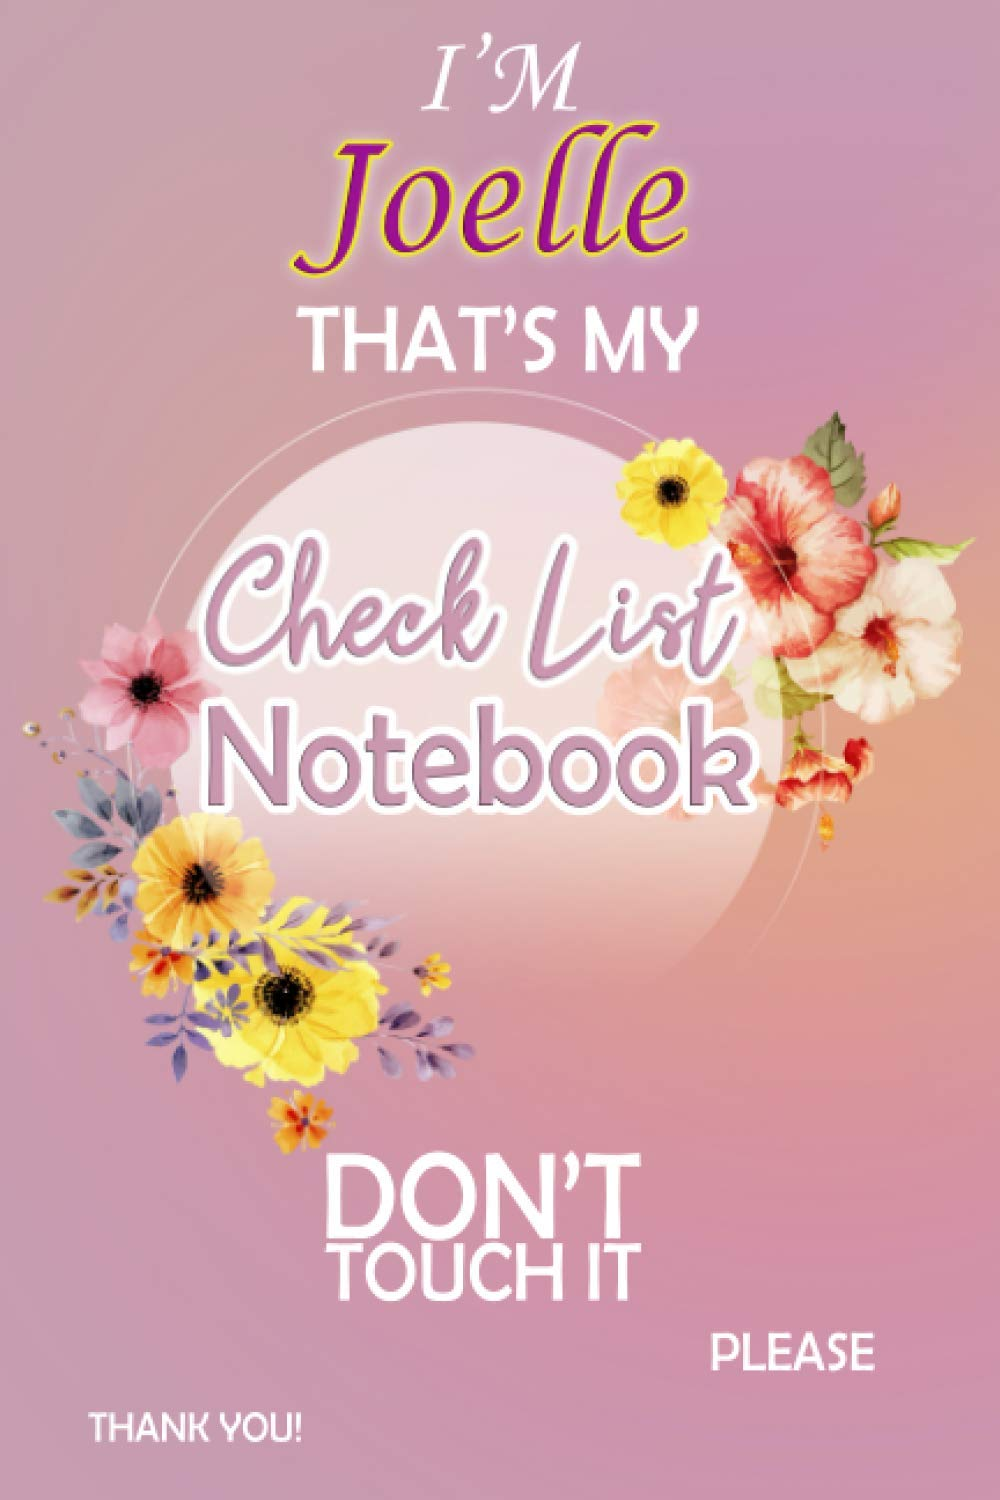 I'm Joelle That's My Check List Notebook Don't Touch It: Daily Check List Notebook For Girls, Teens And Women With a Weekly Review | Adulting To Do ... Increase Your Productivity (110 Pages, 6x9)